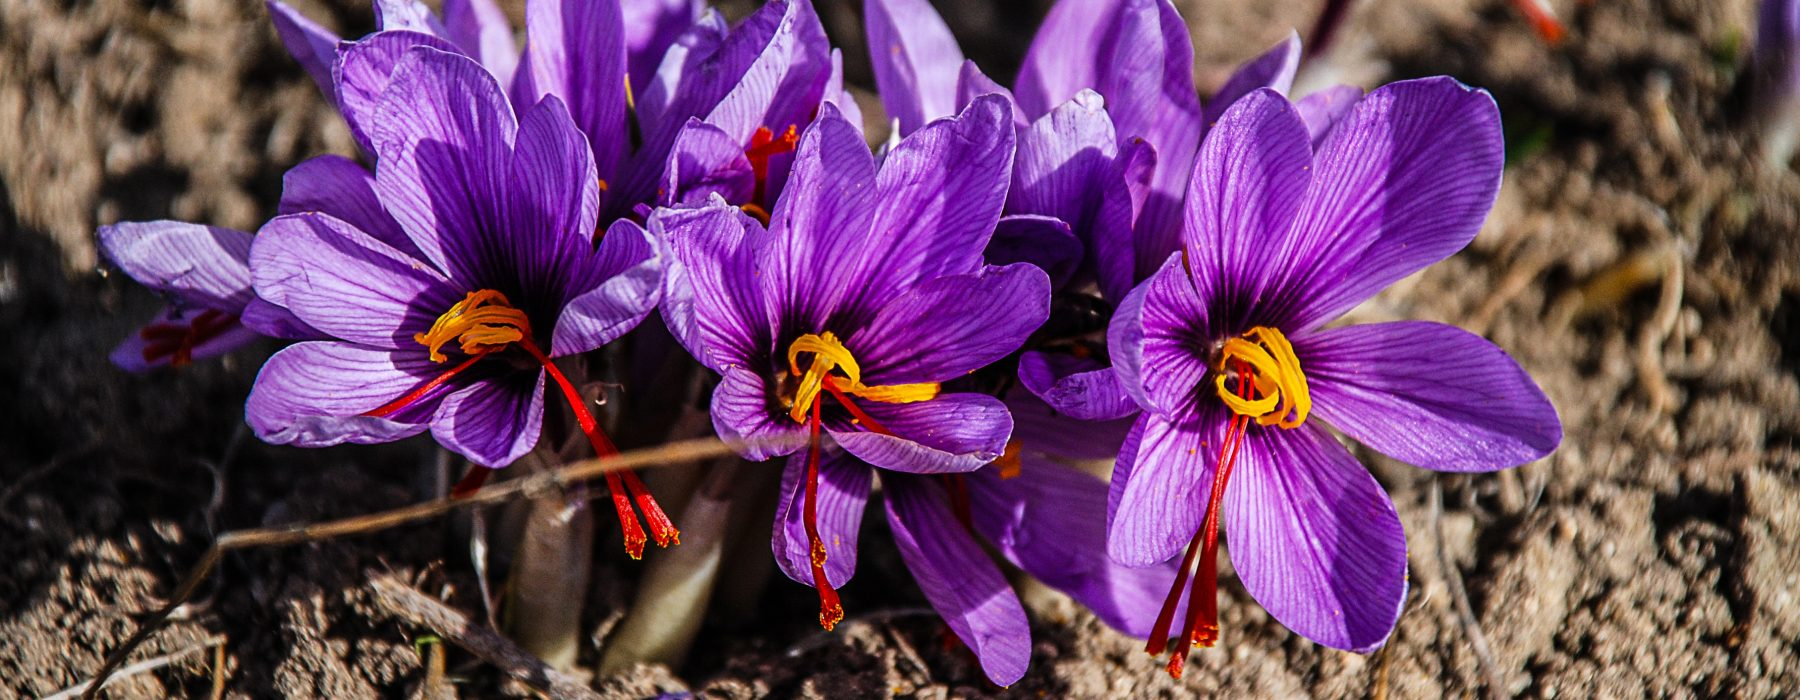 """Saffron: how to recognize the """"true"""" Red Gold"""